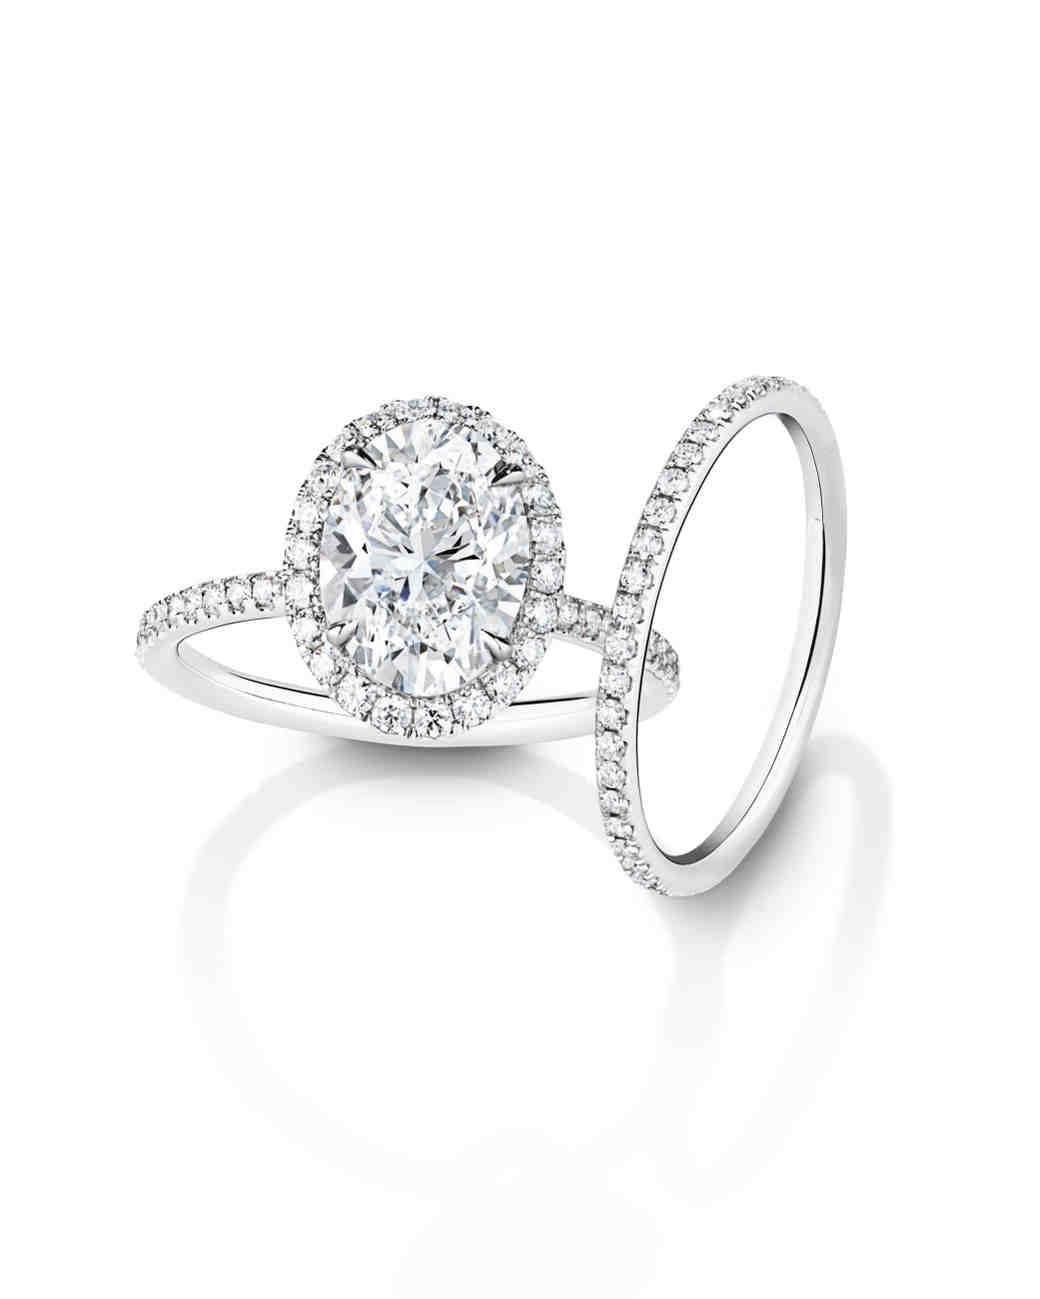 A Guide To Harry Winston Engagement Ring Prices – Todayring For Harry Winston Engagement Rings (View 1 of 15)